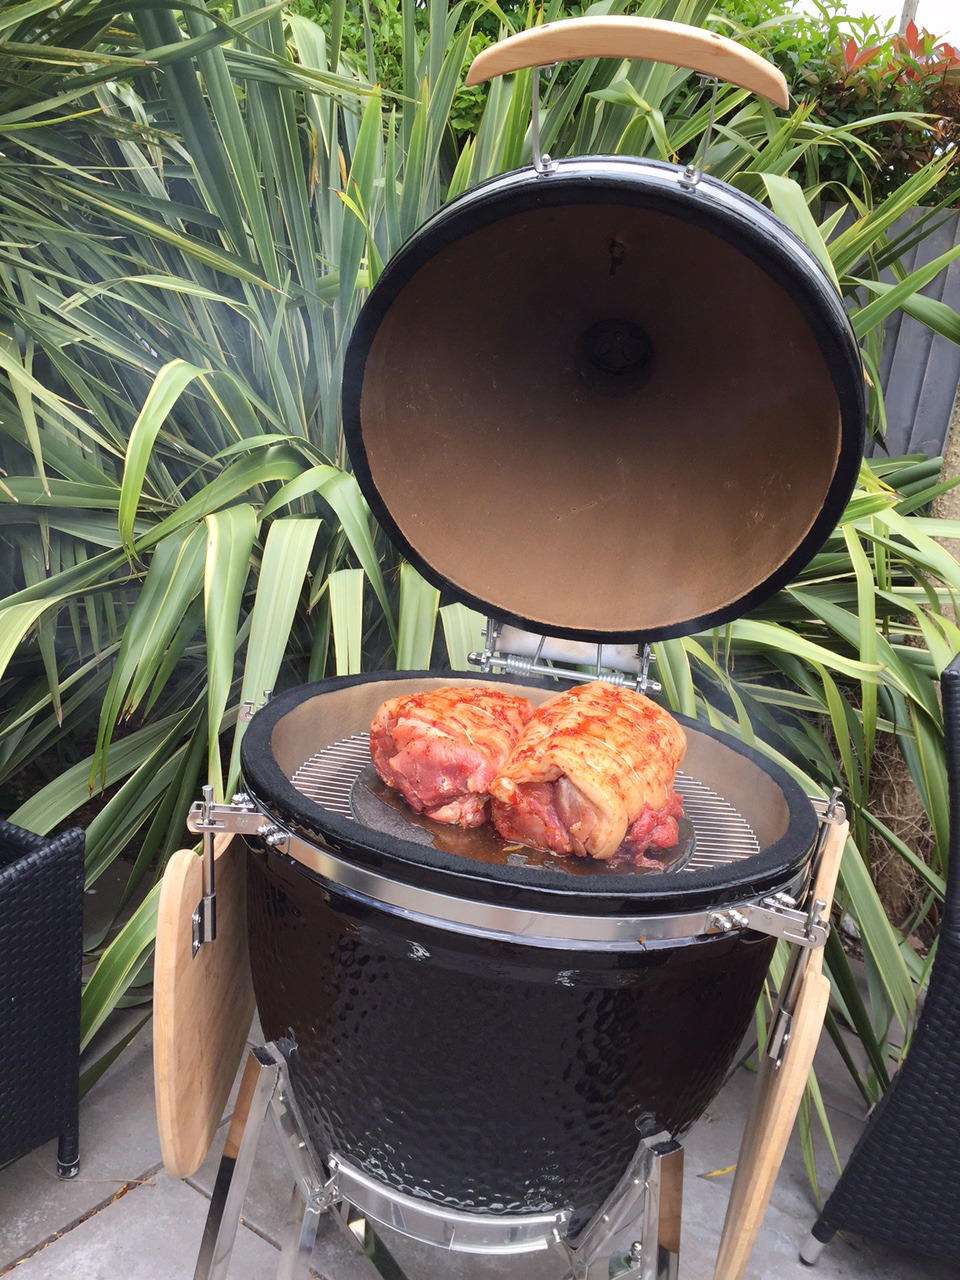 The SteakStones Kamado Smoker & Grill